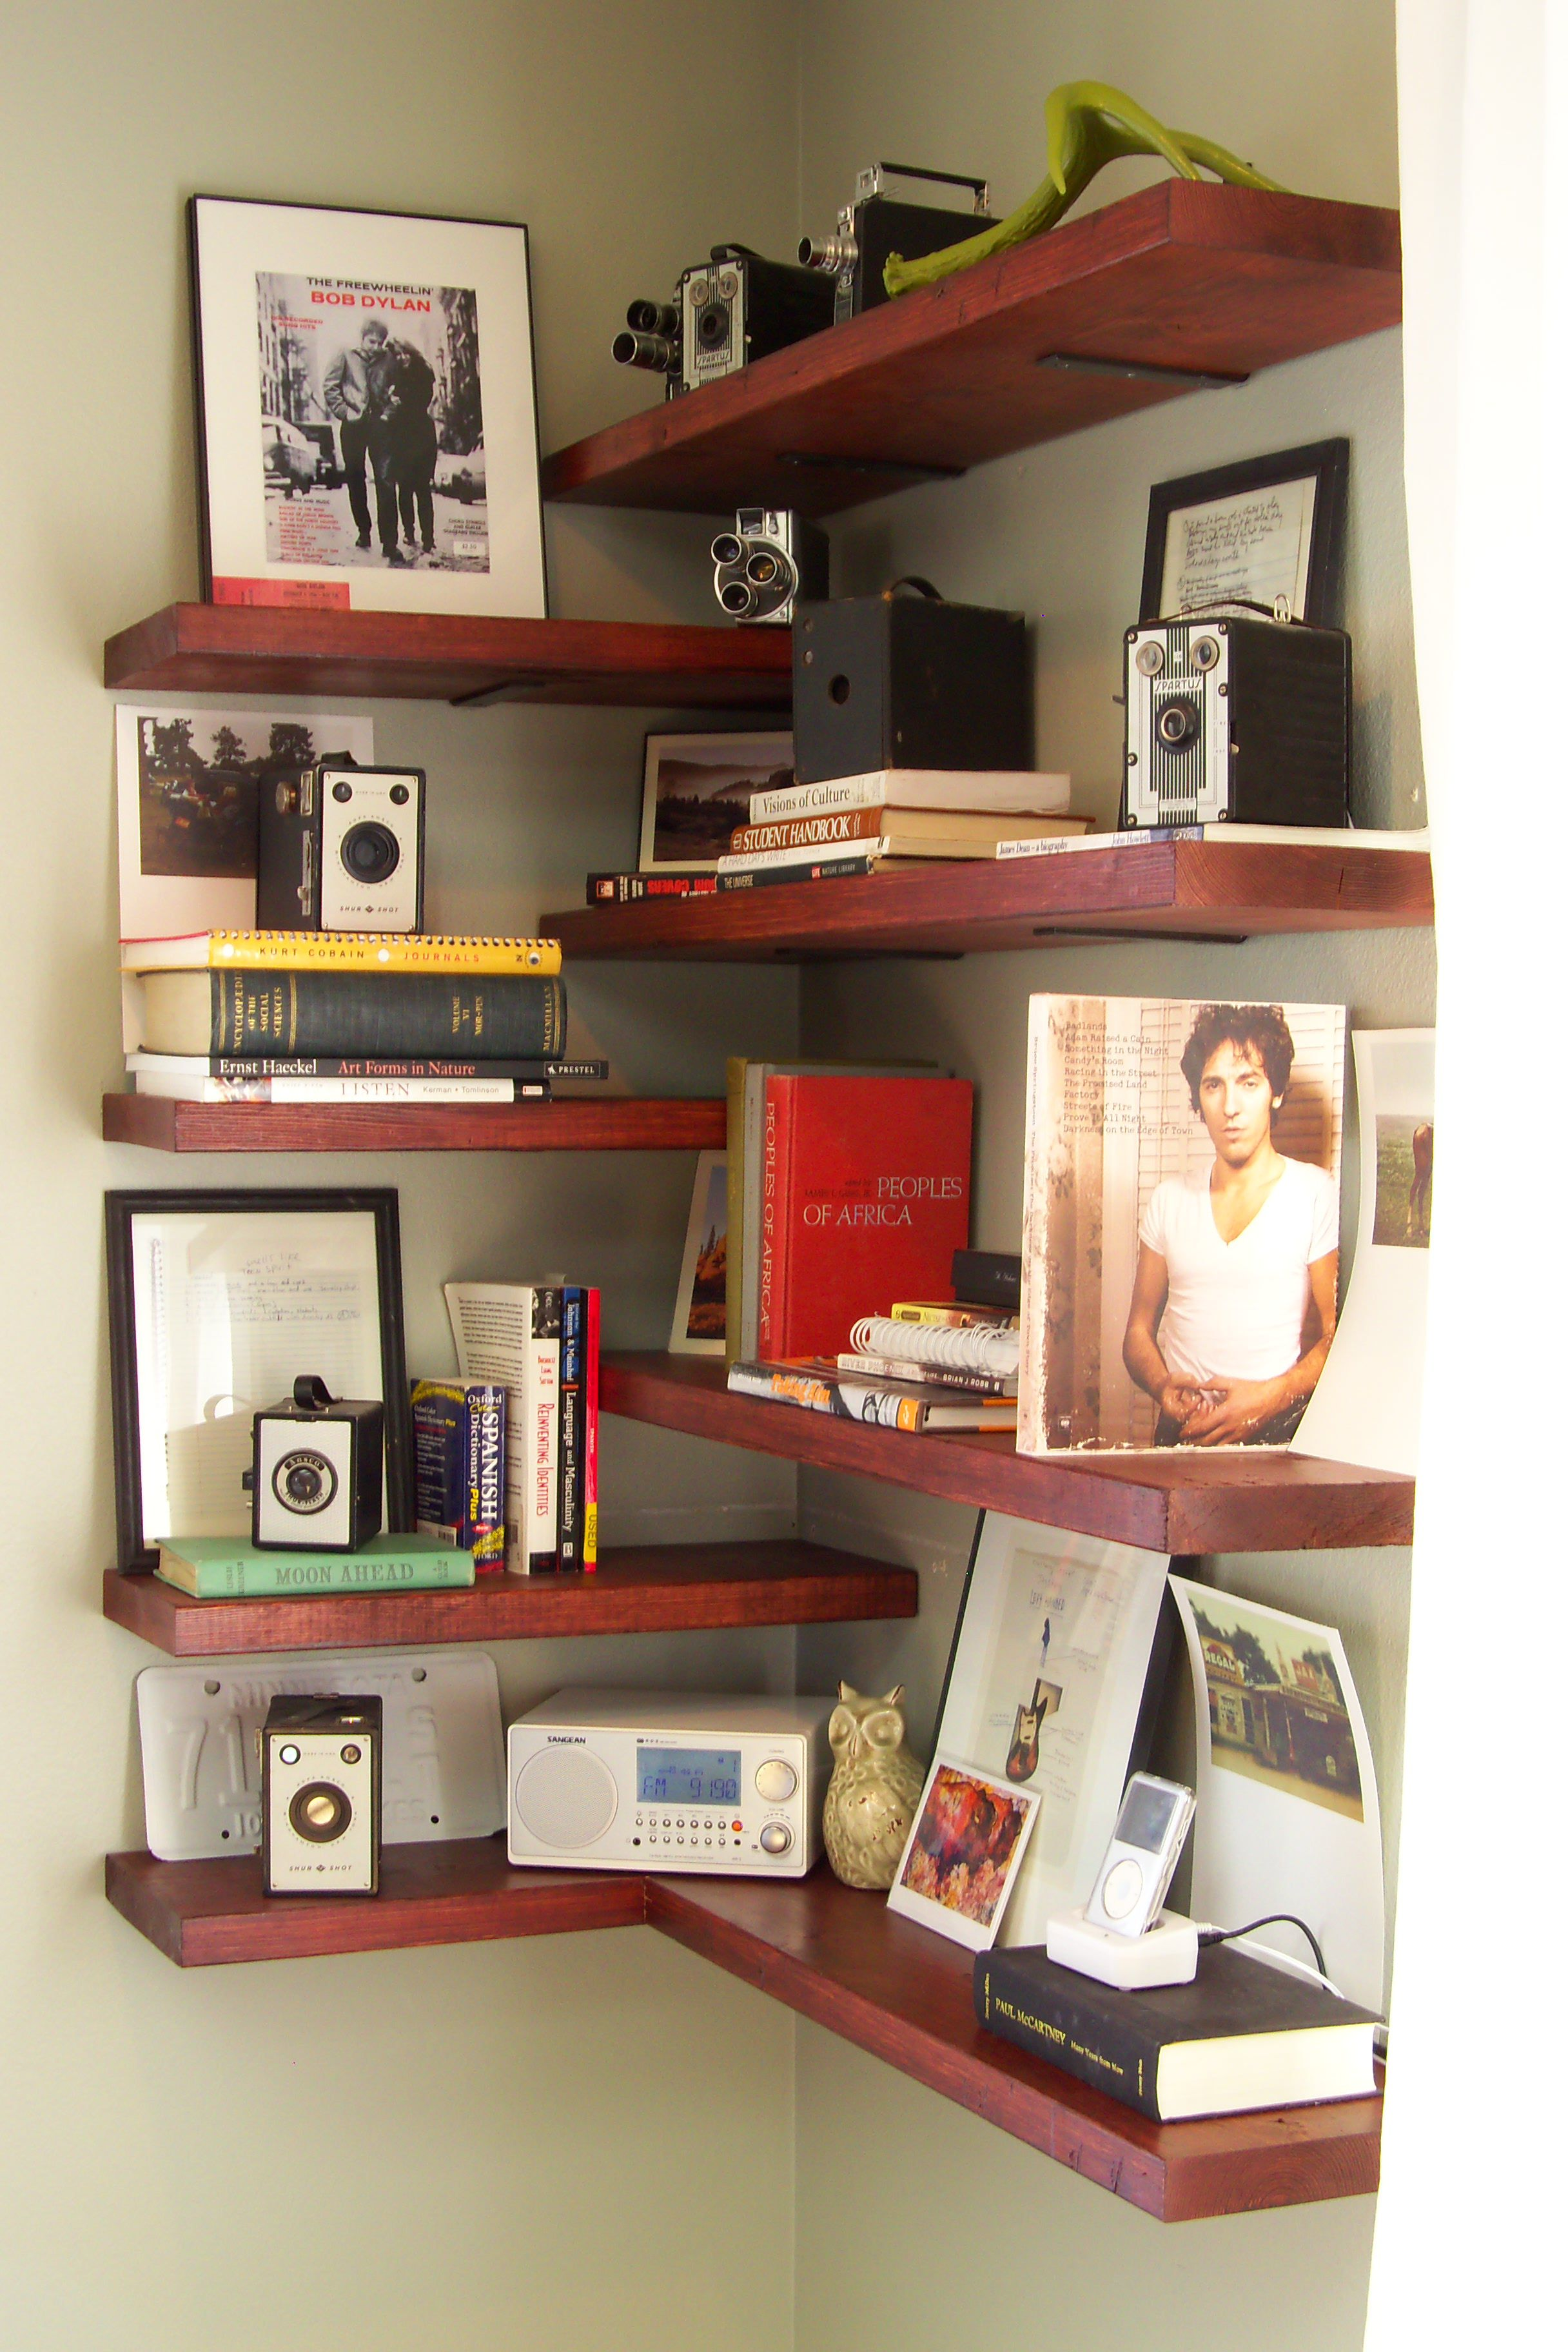 Astonishing Design Of The Brown Wooden Floating Corner Wall Shelves With Some Pics